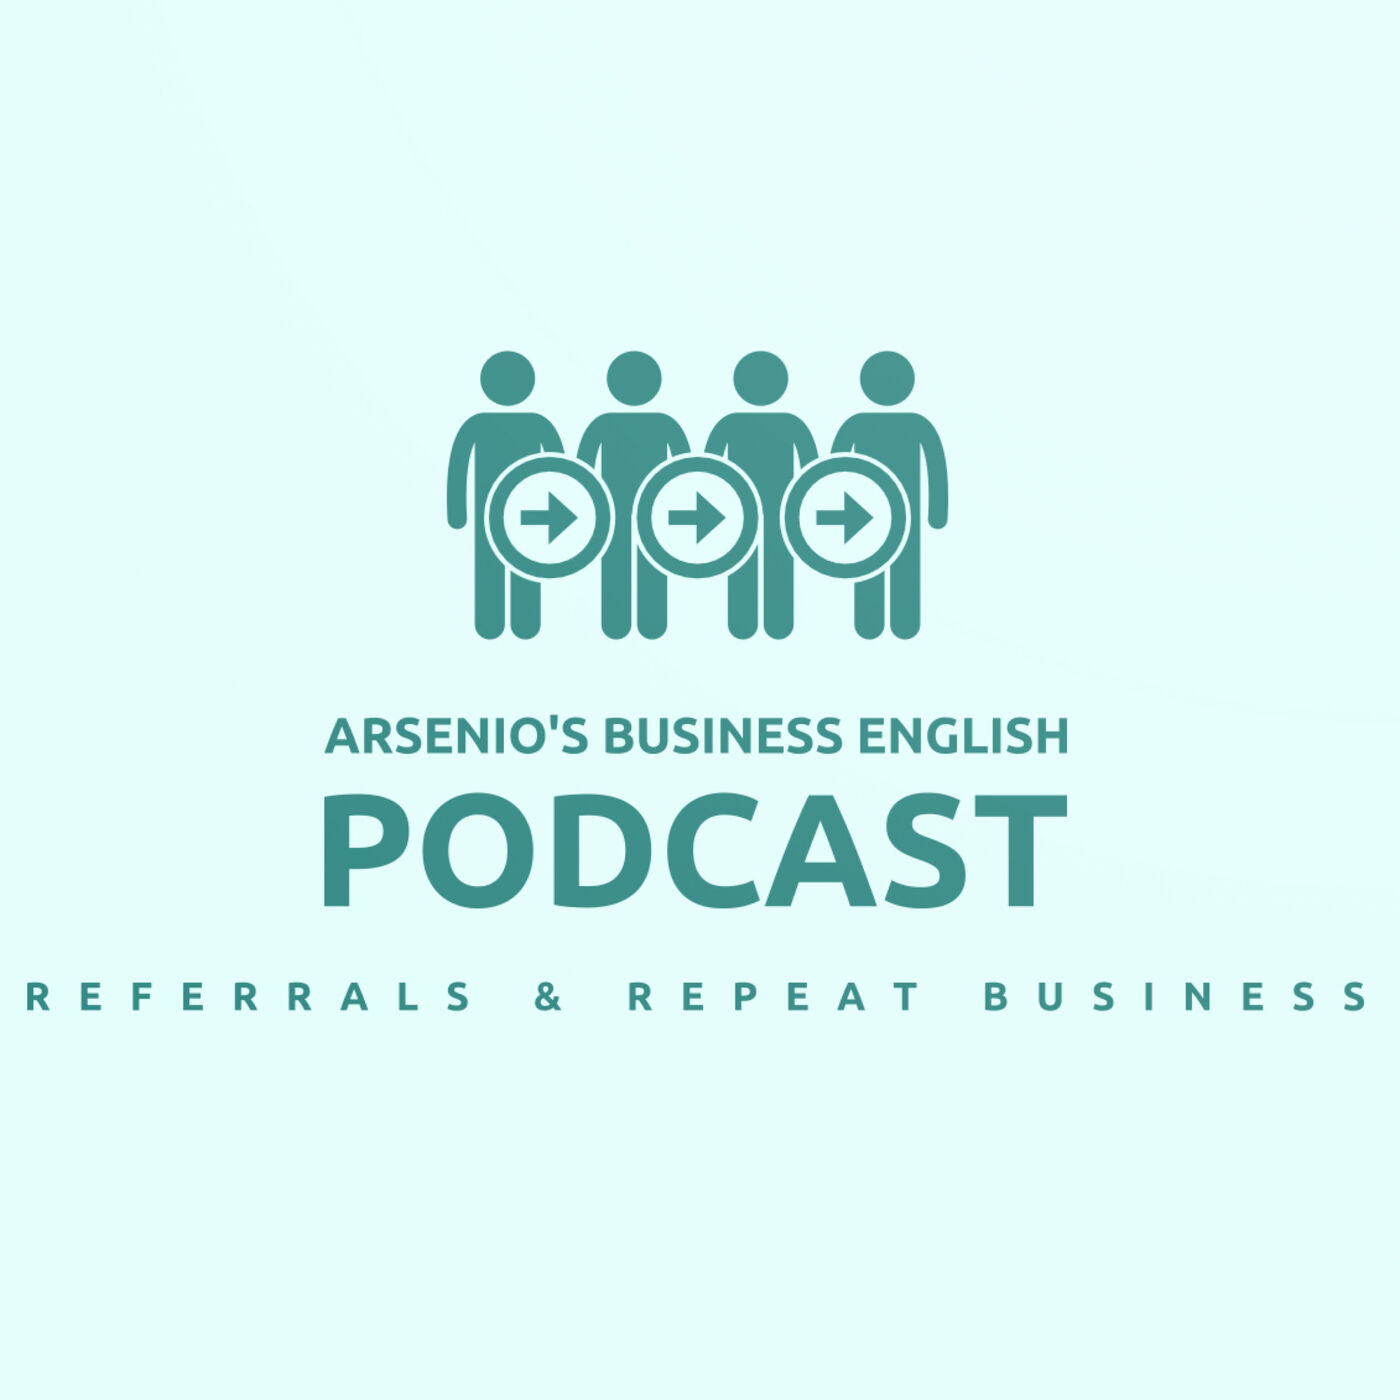 Arsenio's Business English Podcast | Season 6 | Sales | Referrals & Repeat Business